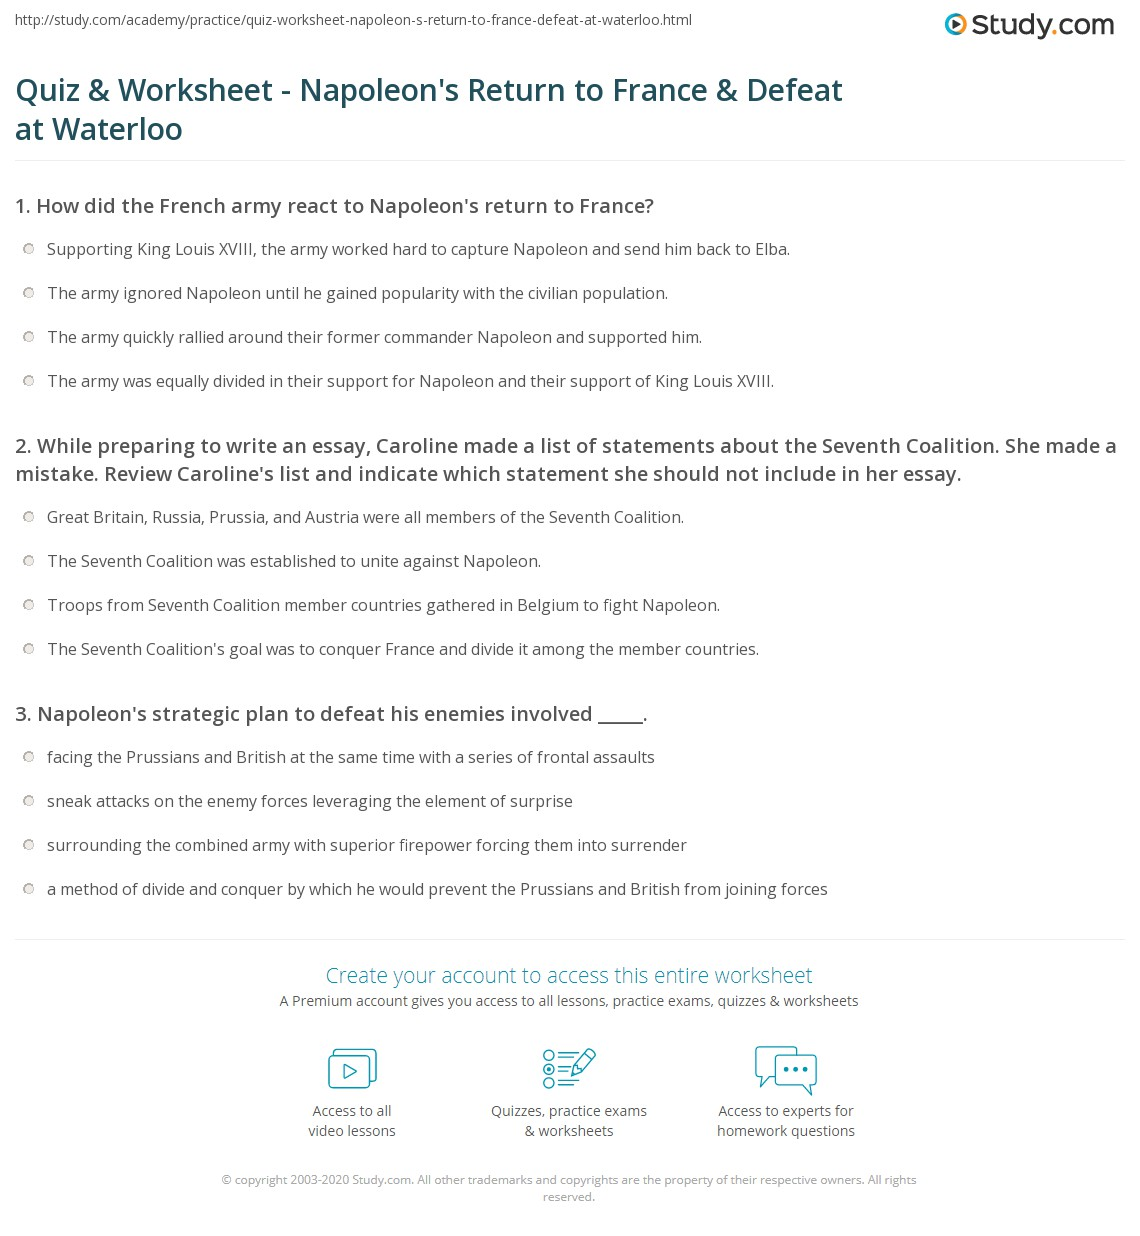 quiz worksheet napoleon s return to defeat at while preparing to write an essay caroline made a list of statements about the seventh coalition she made a mistake review caroline s list and indicate